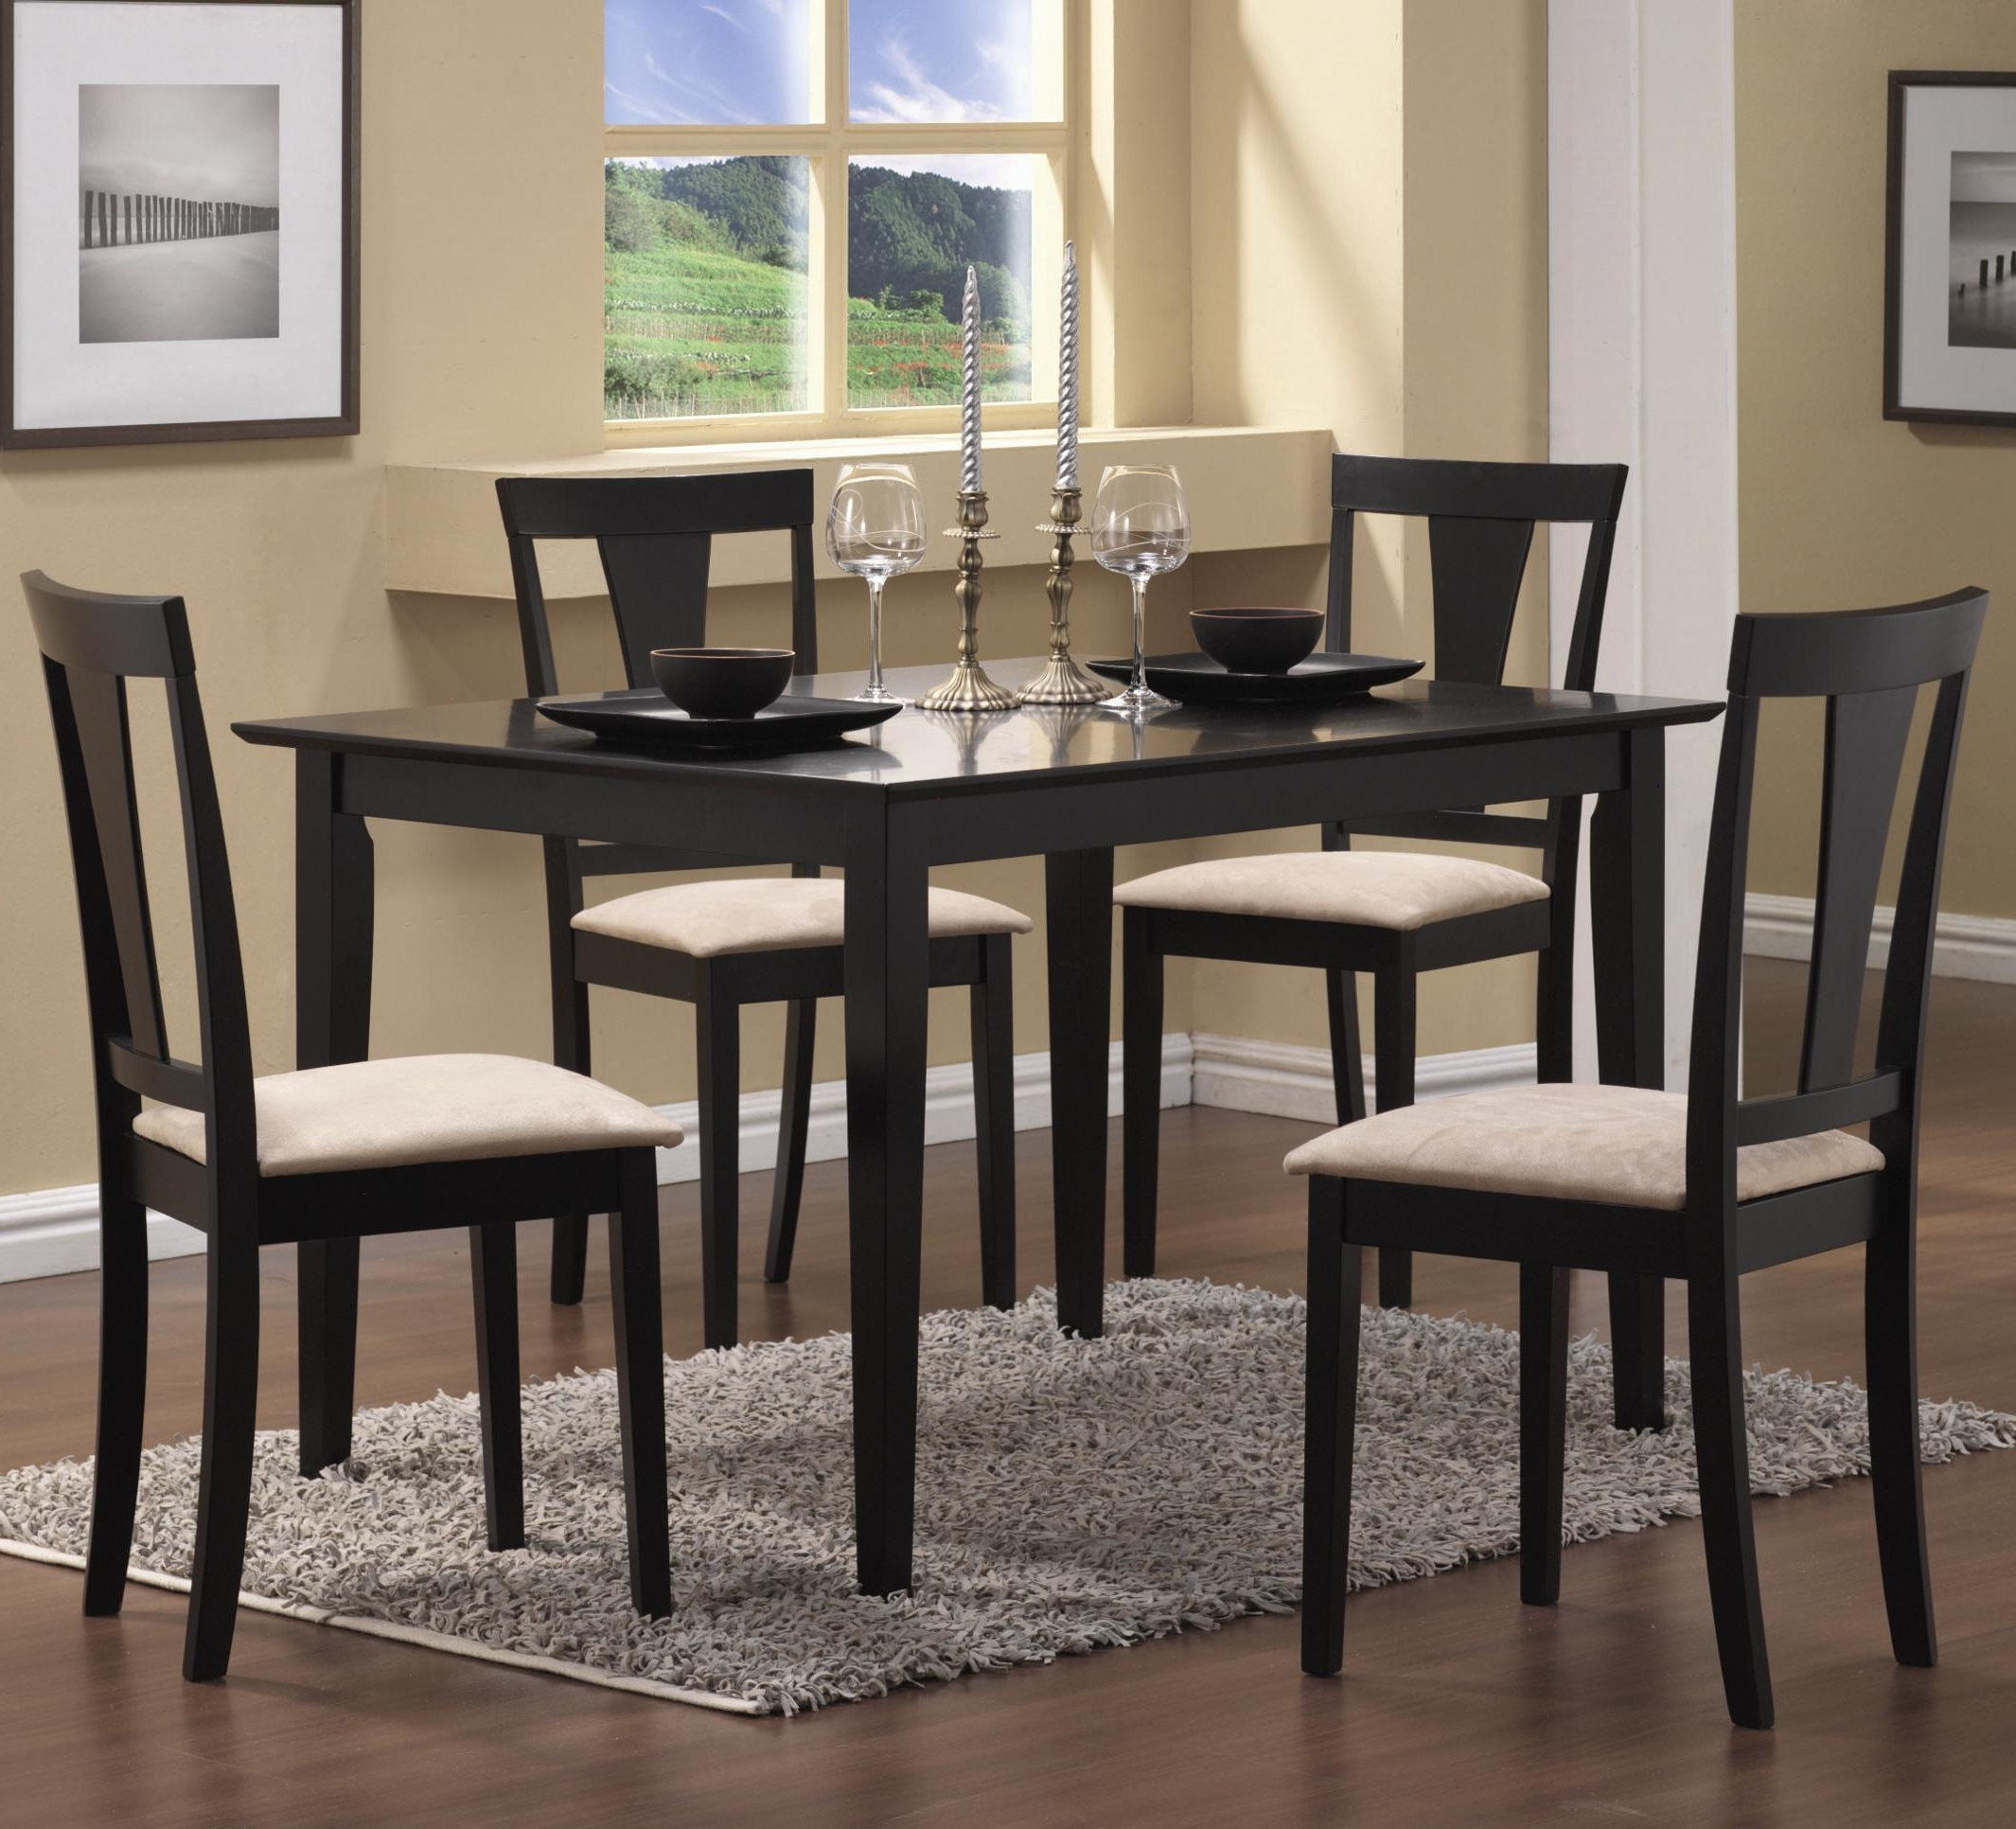 Dining Room Tables And Chairs For Popular Santa Clara Furniture Store, San Jose Furniture Store, Sunnyvale (Gallery 13 of 25)